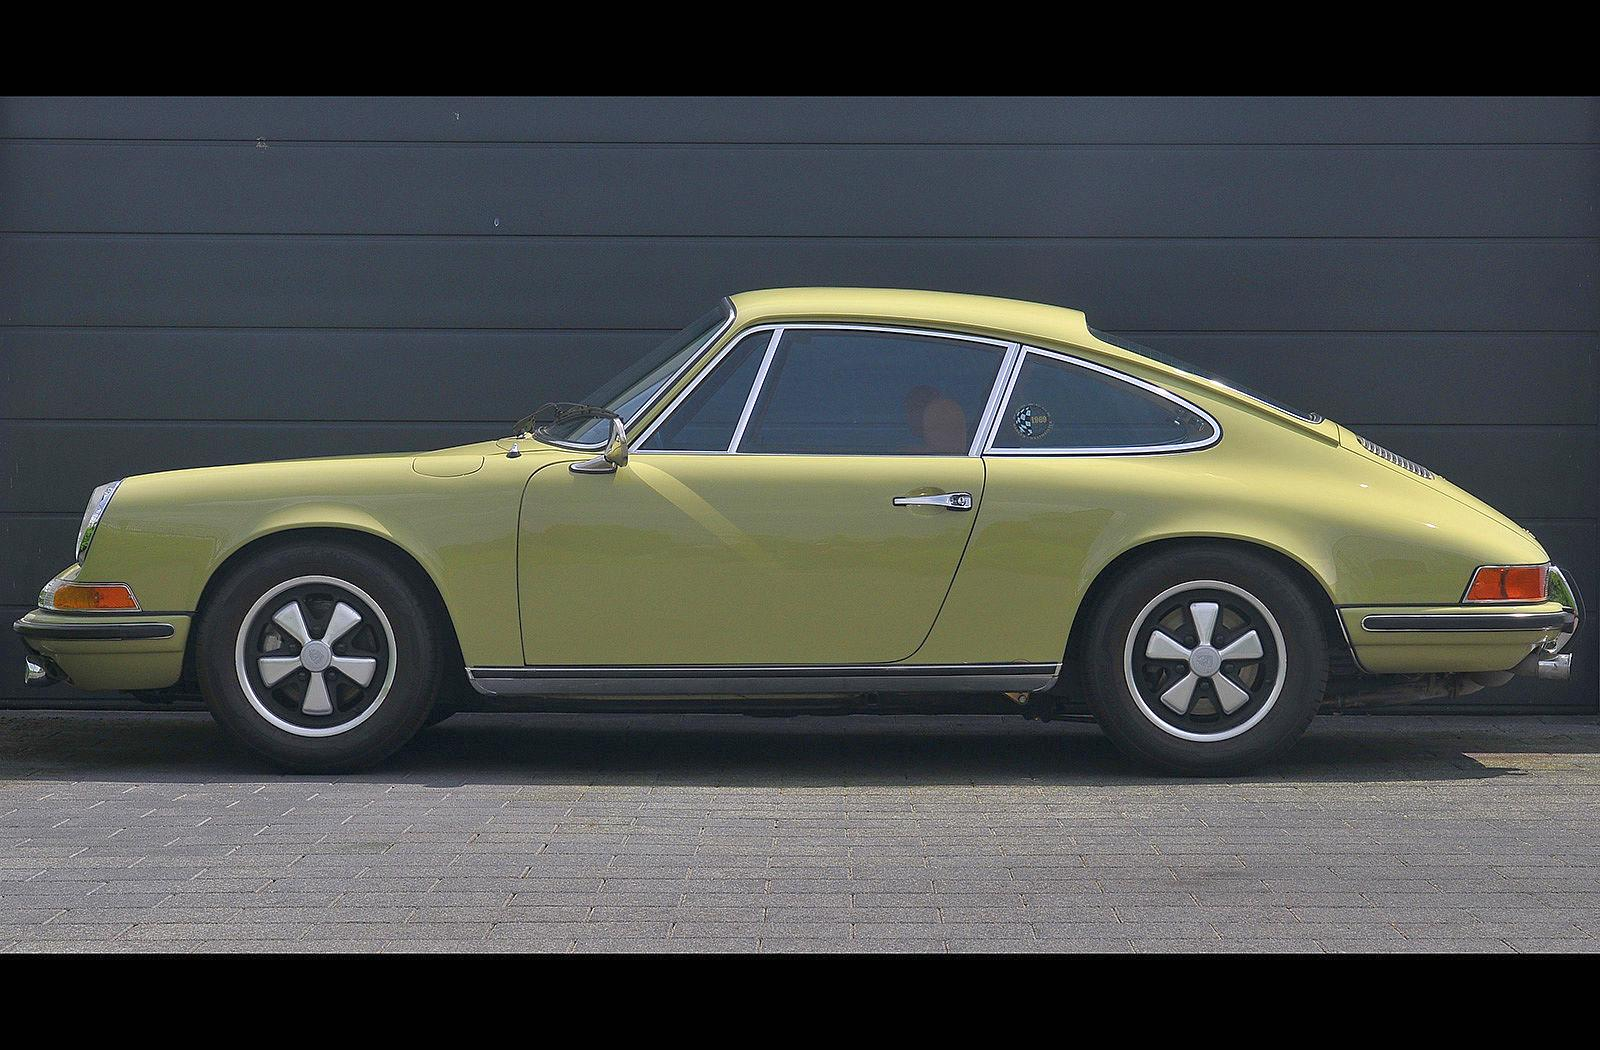 PS Automobile Porsche 911 2.0 S Coupe Gelb 06